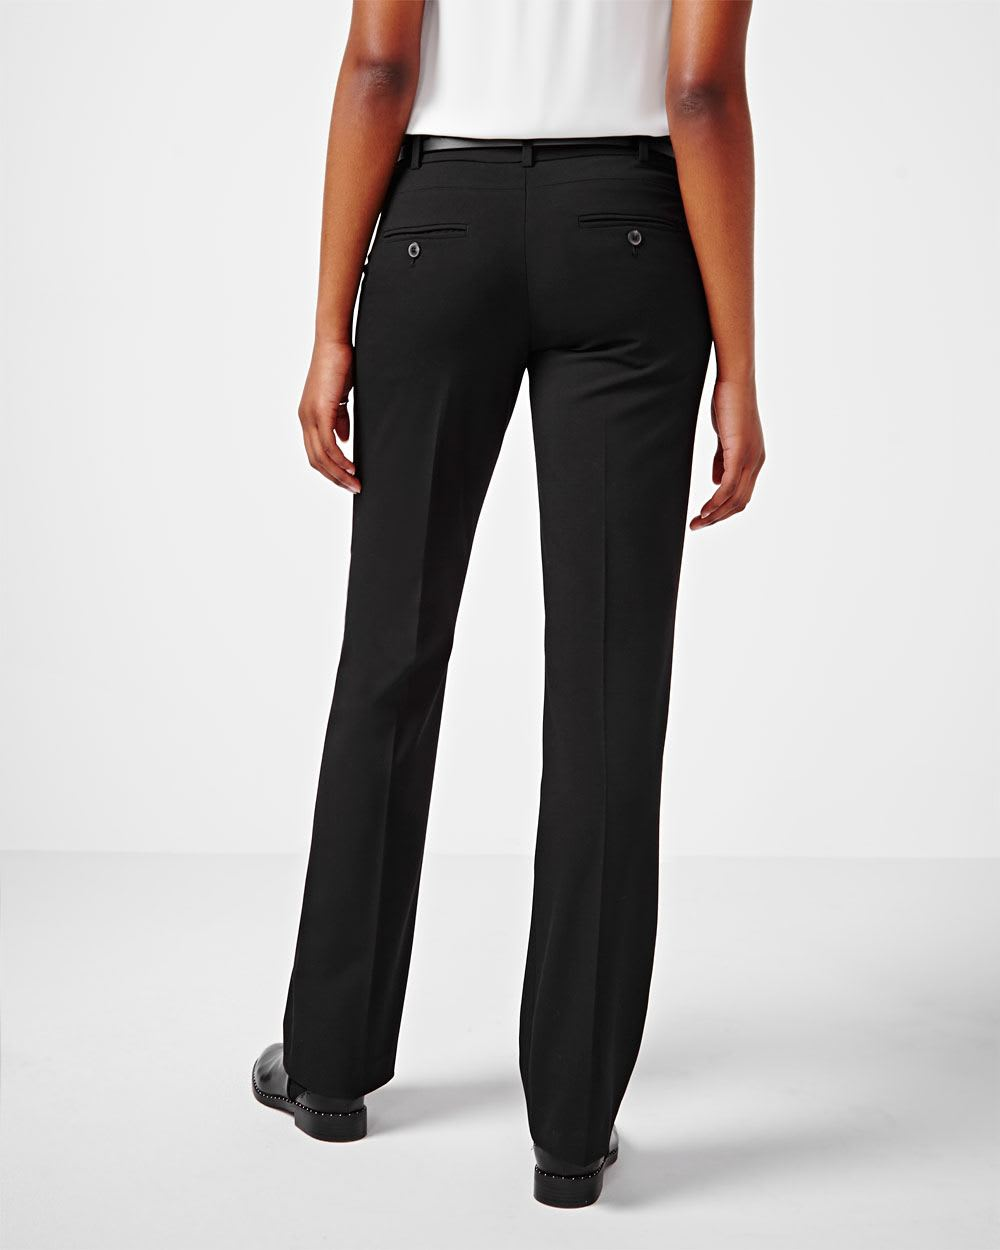 Stretchy High Waisted Pants - Wide leg Super thin stretchy material #prettylittething #xs #blackwidelegpants #widelegbottoms #highwaisted.